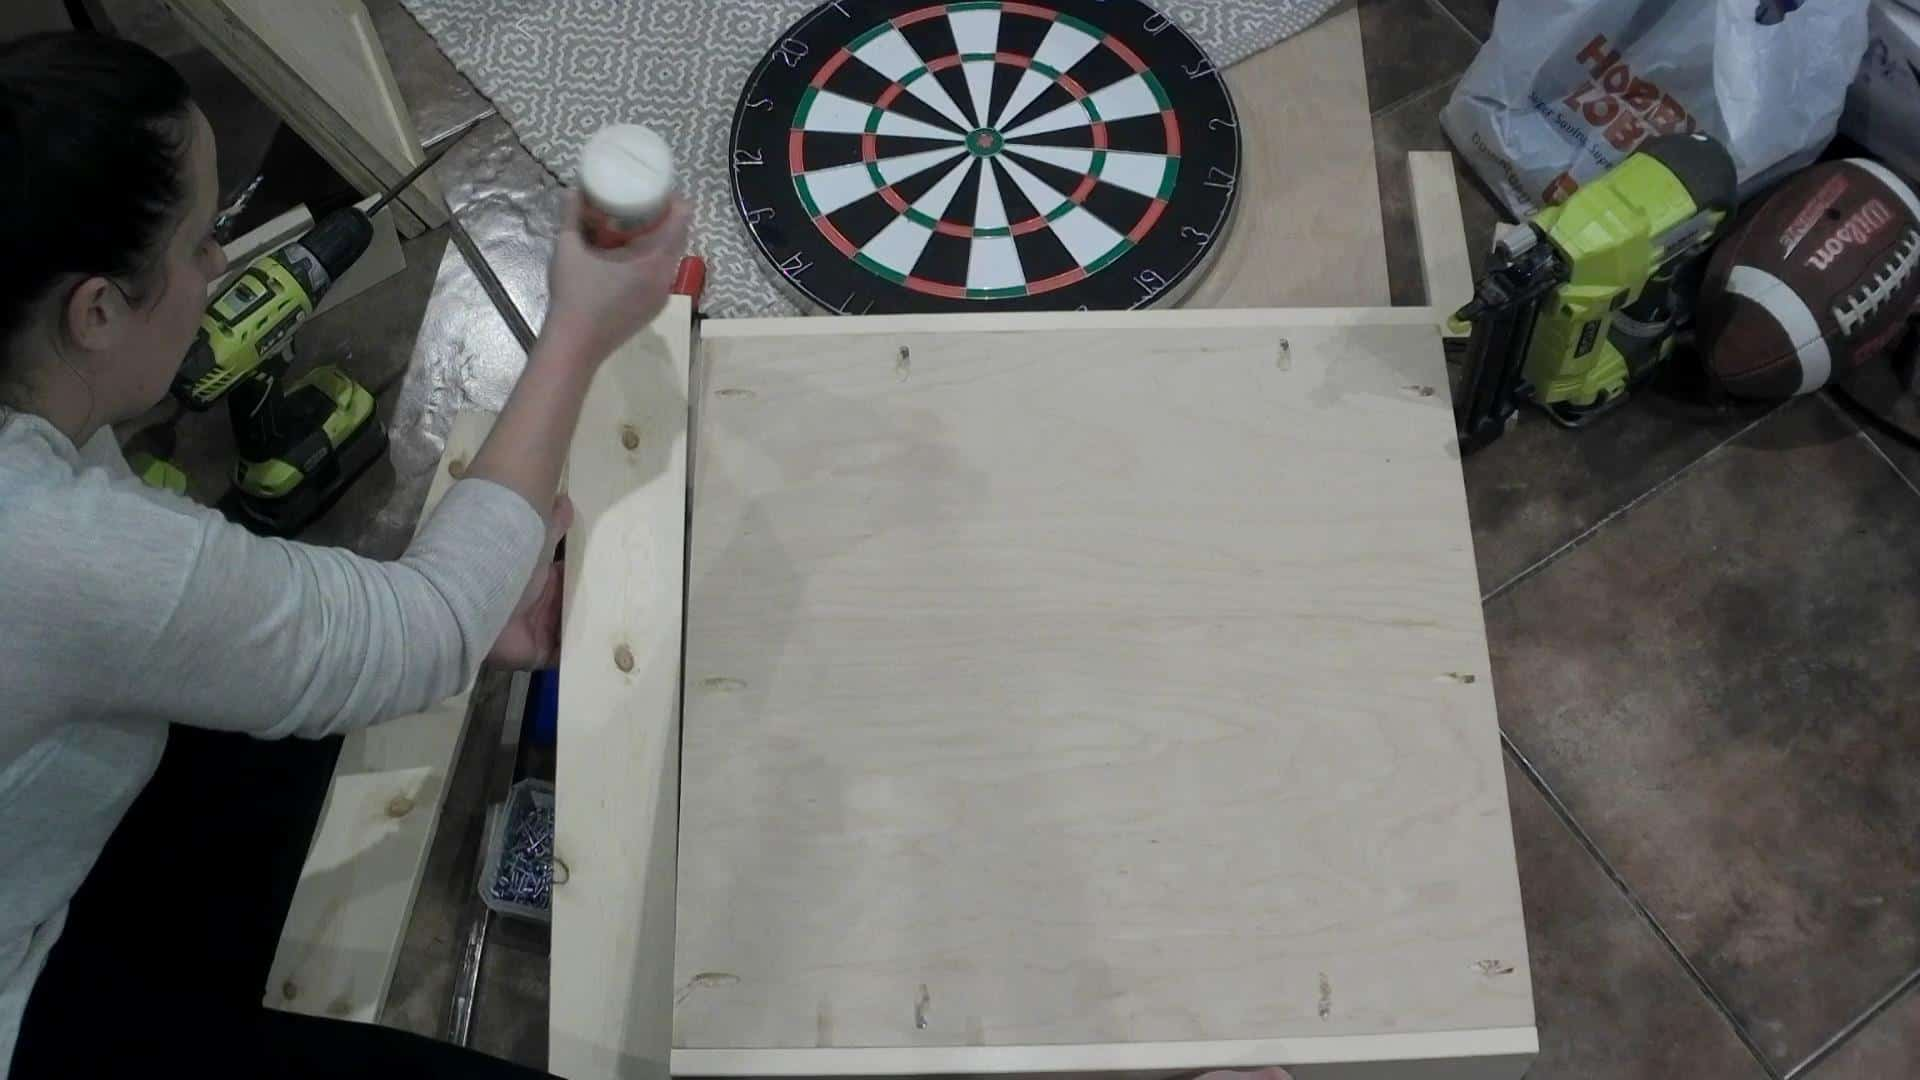 Glueing the frame on the DIY dartboard cabinet